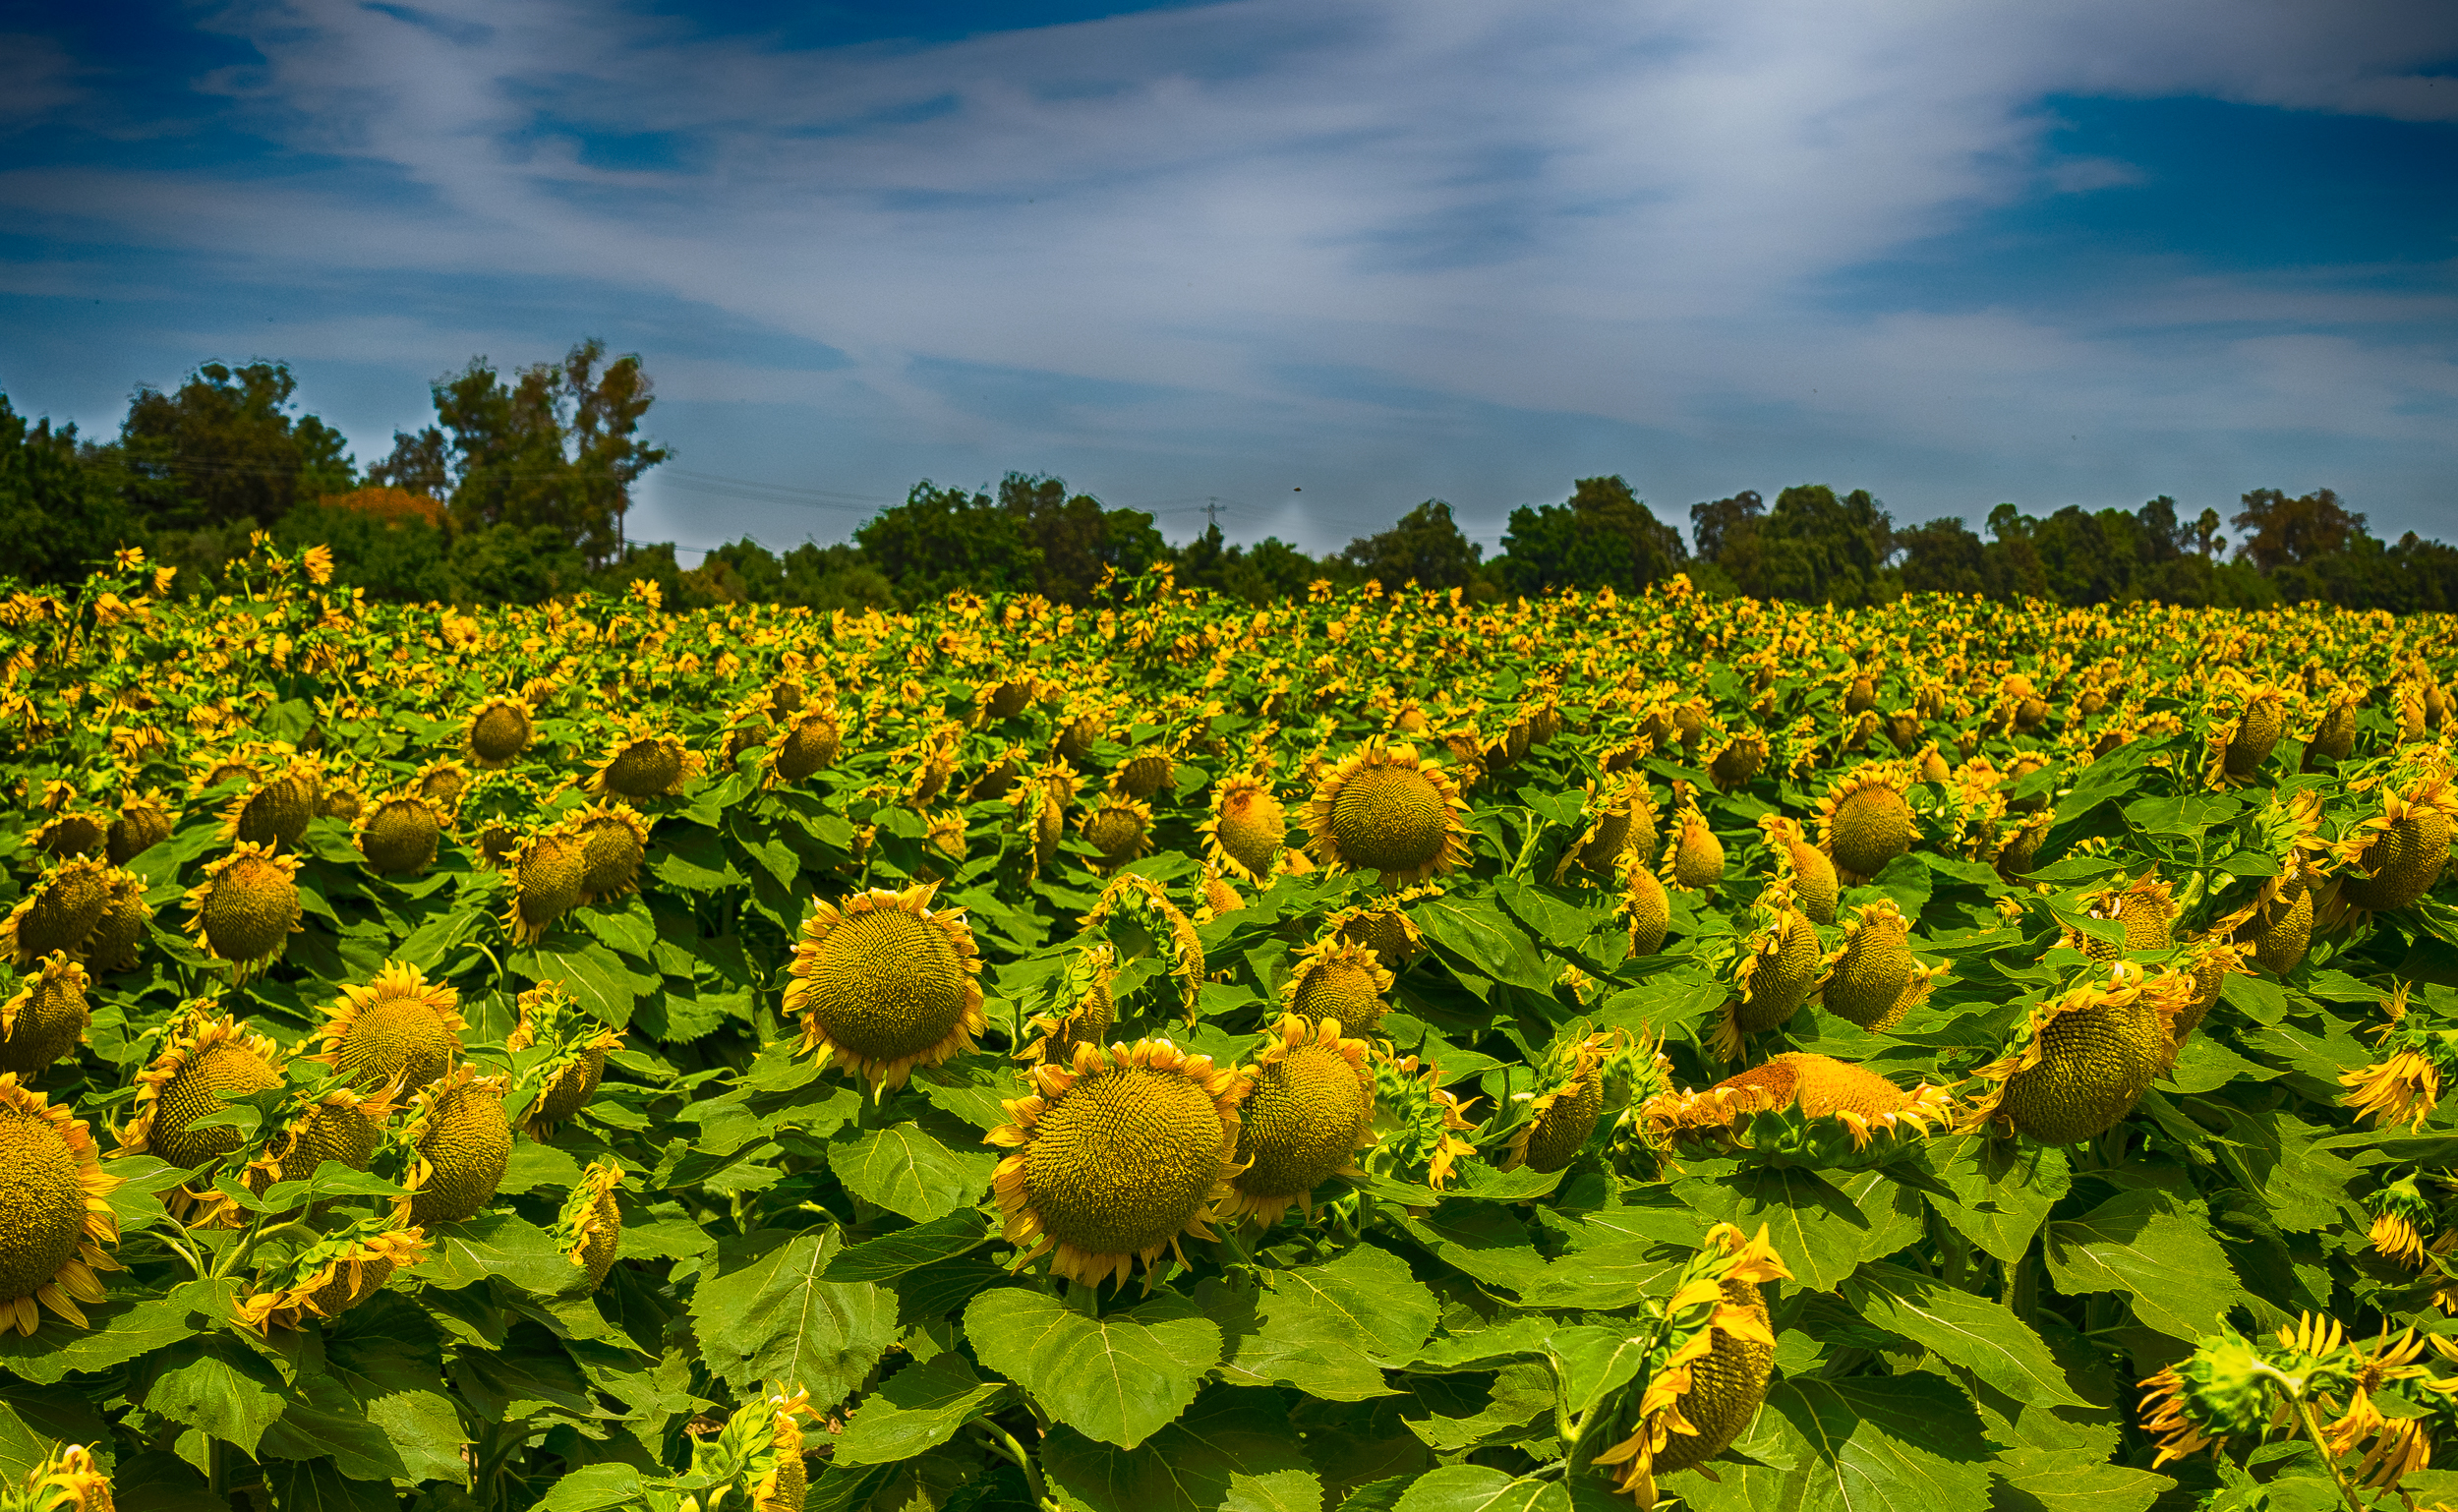 Sunflowers-41_HDR.jpg